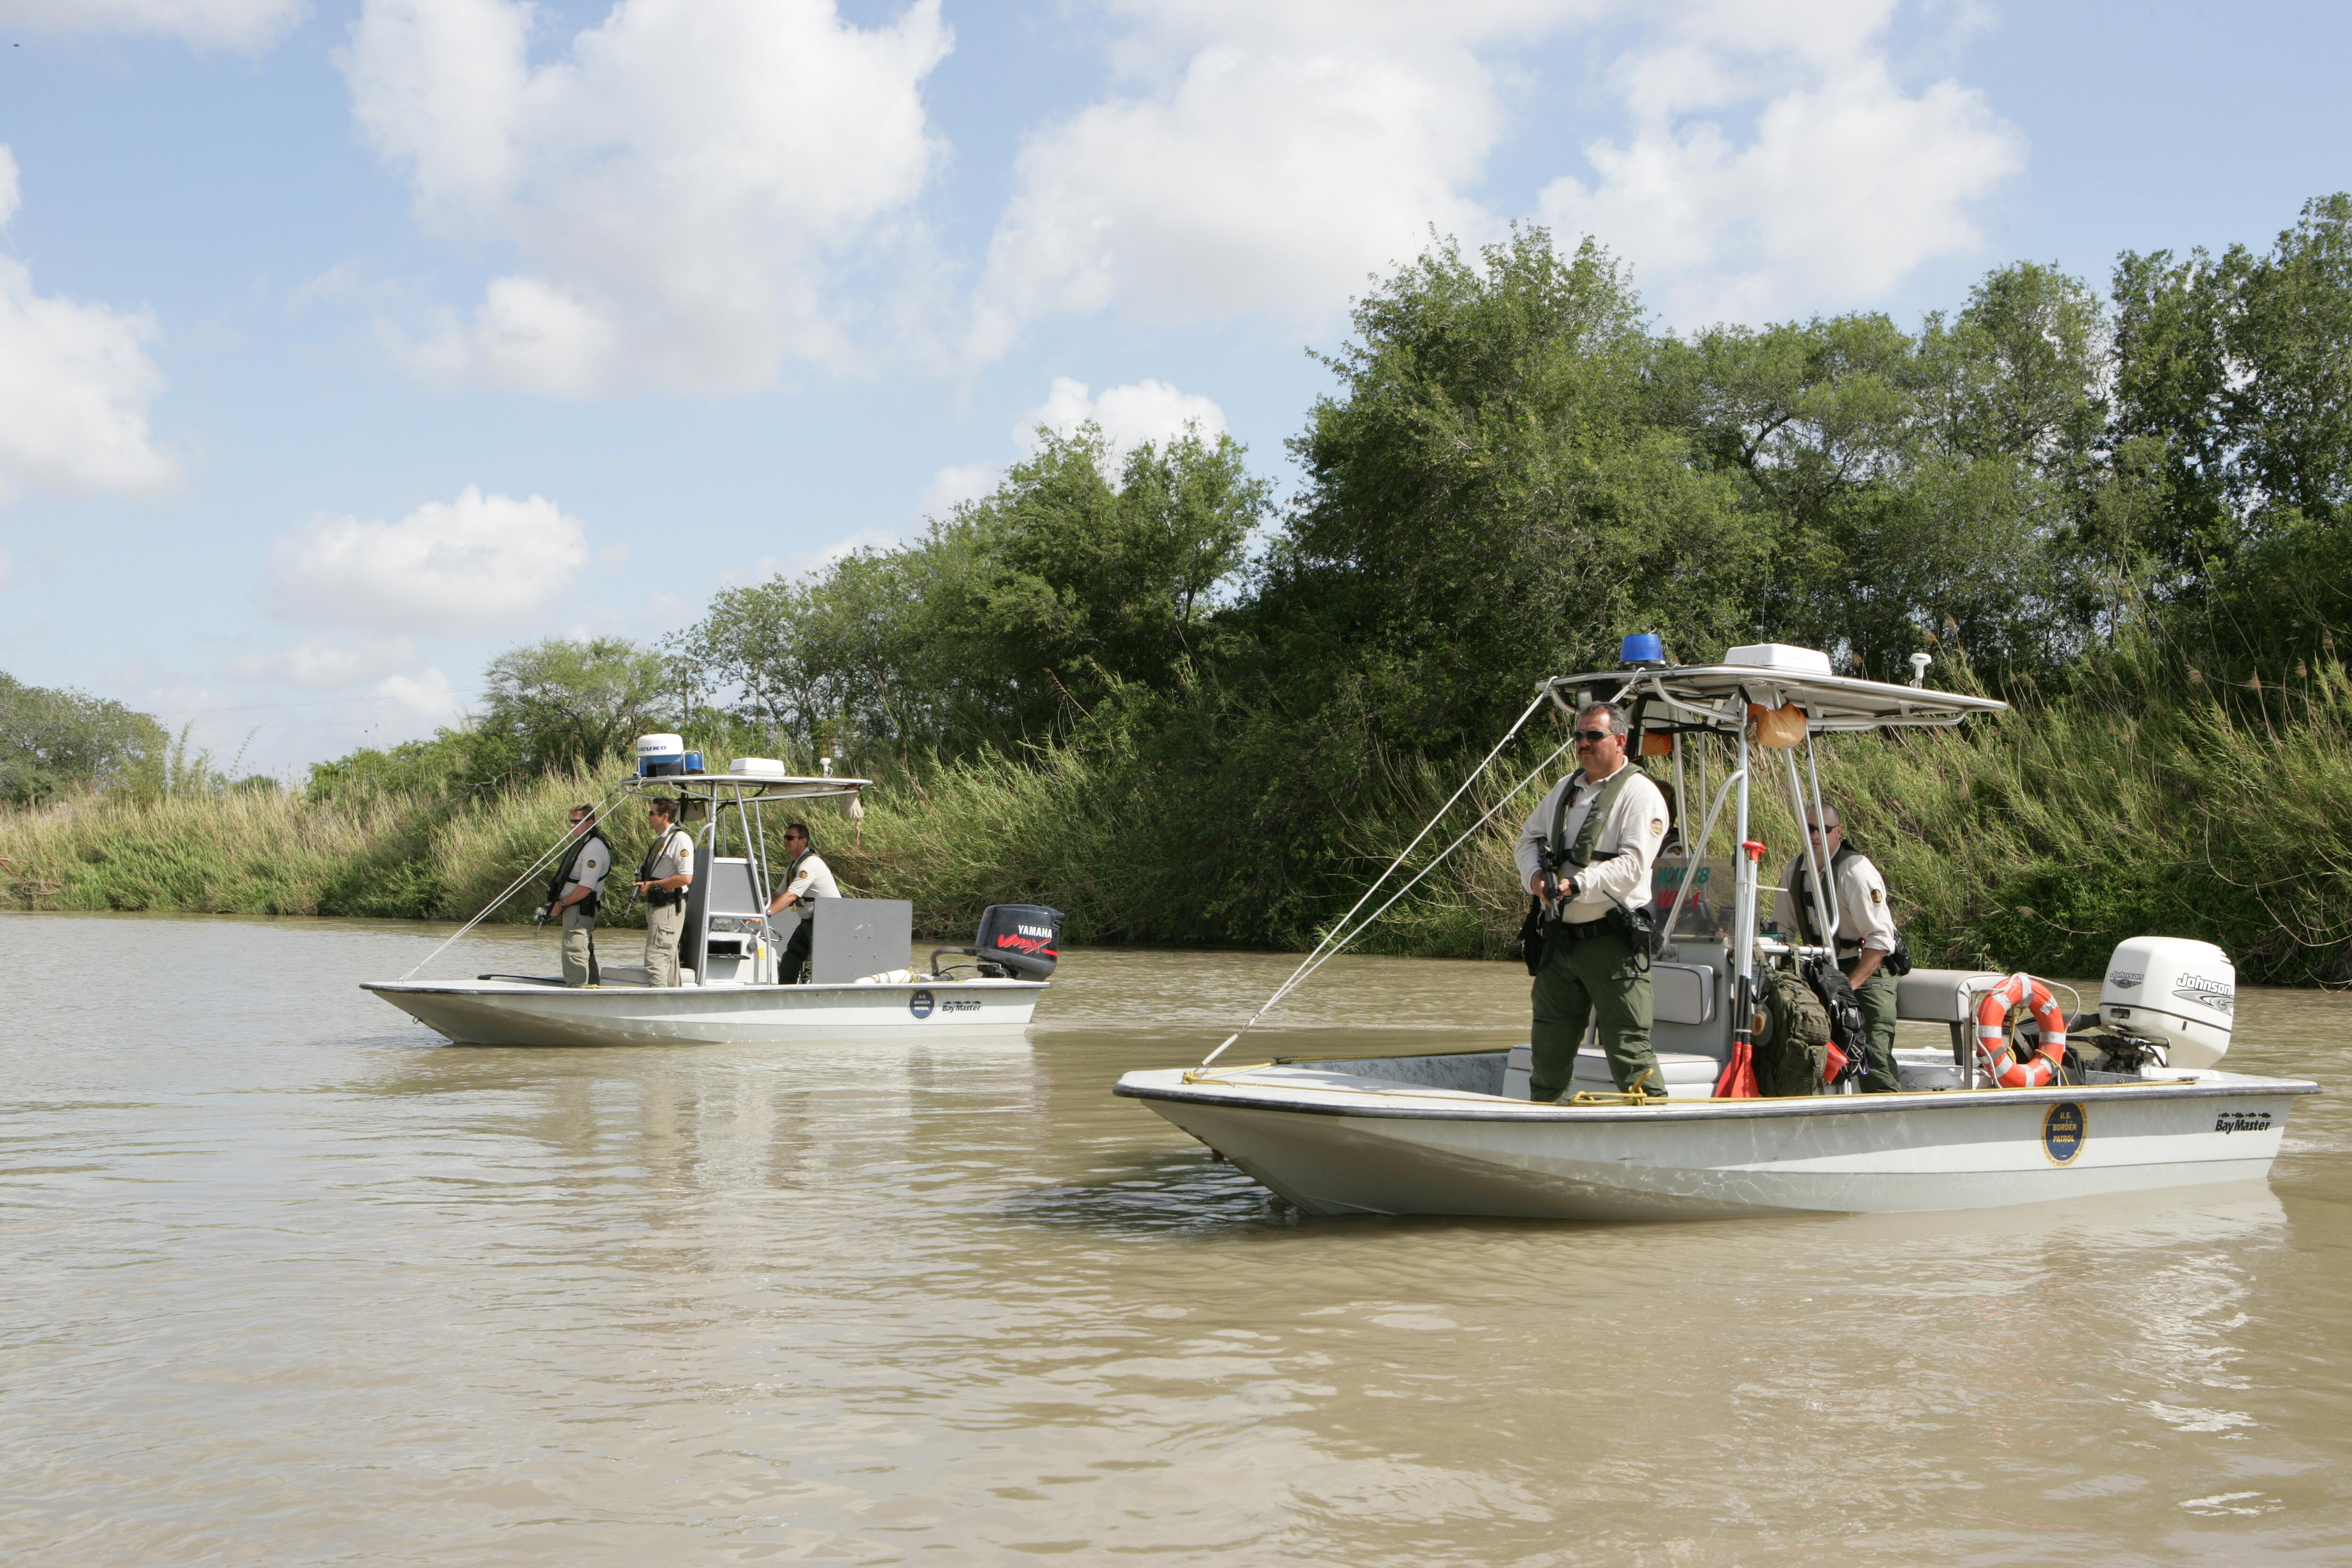 U.S. Border Patrol Marine units face toward Mexico to provide cover for other agents on the U.S. side of the river conducting an investigation.